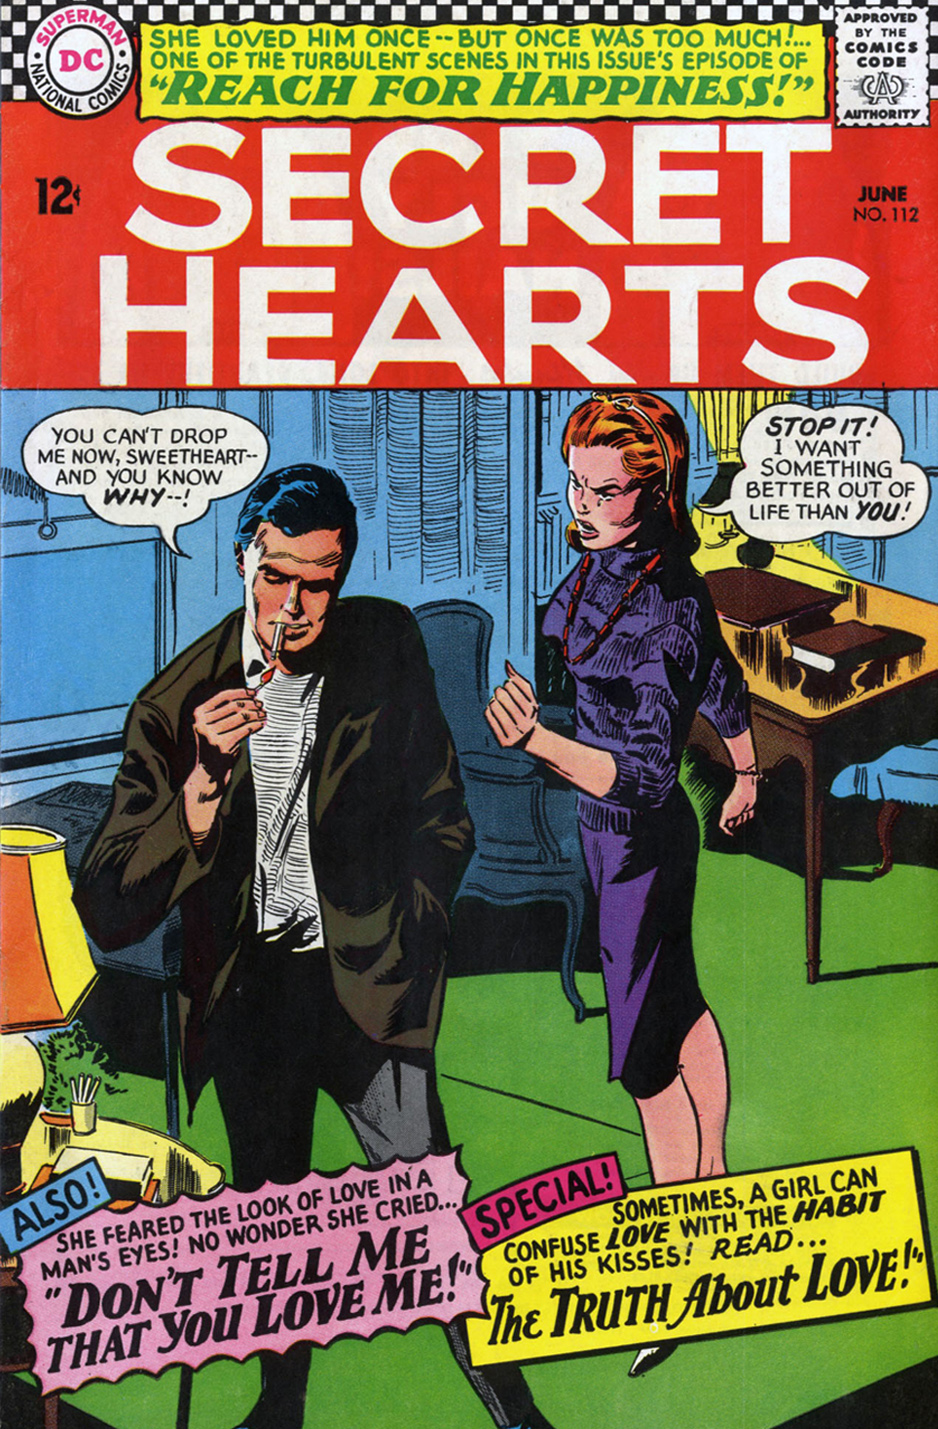 Secret Hearts Reach for Happiness Episode Gene Colan romance comic book adaptation of Peyton Place long running soap opera